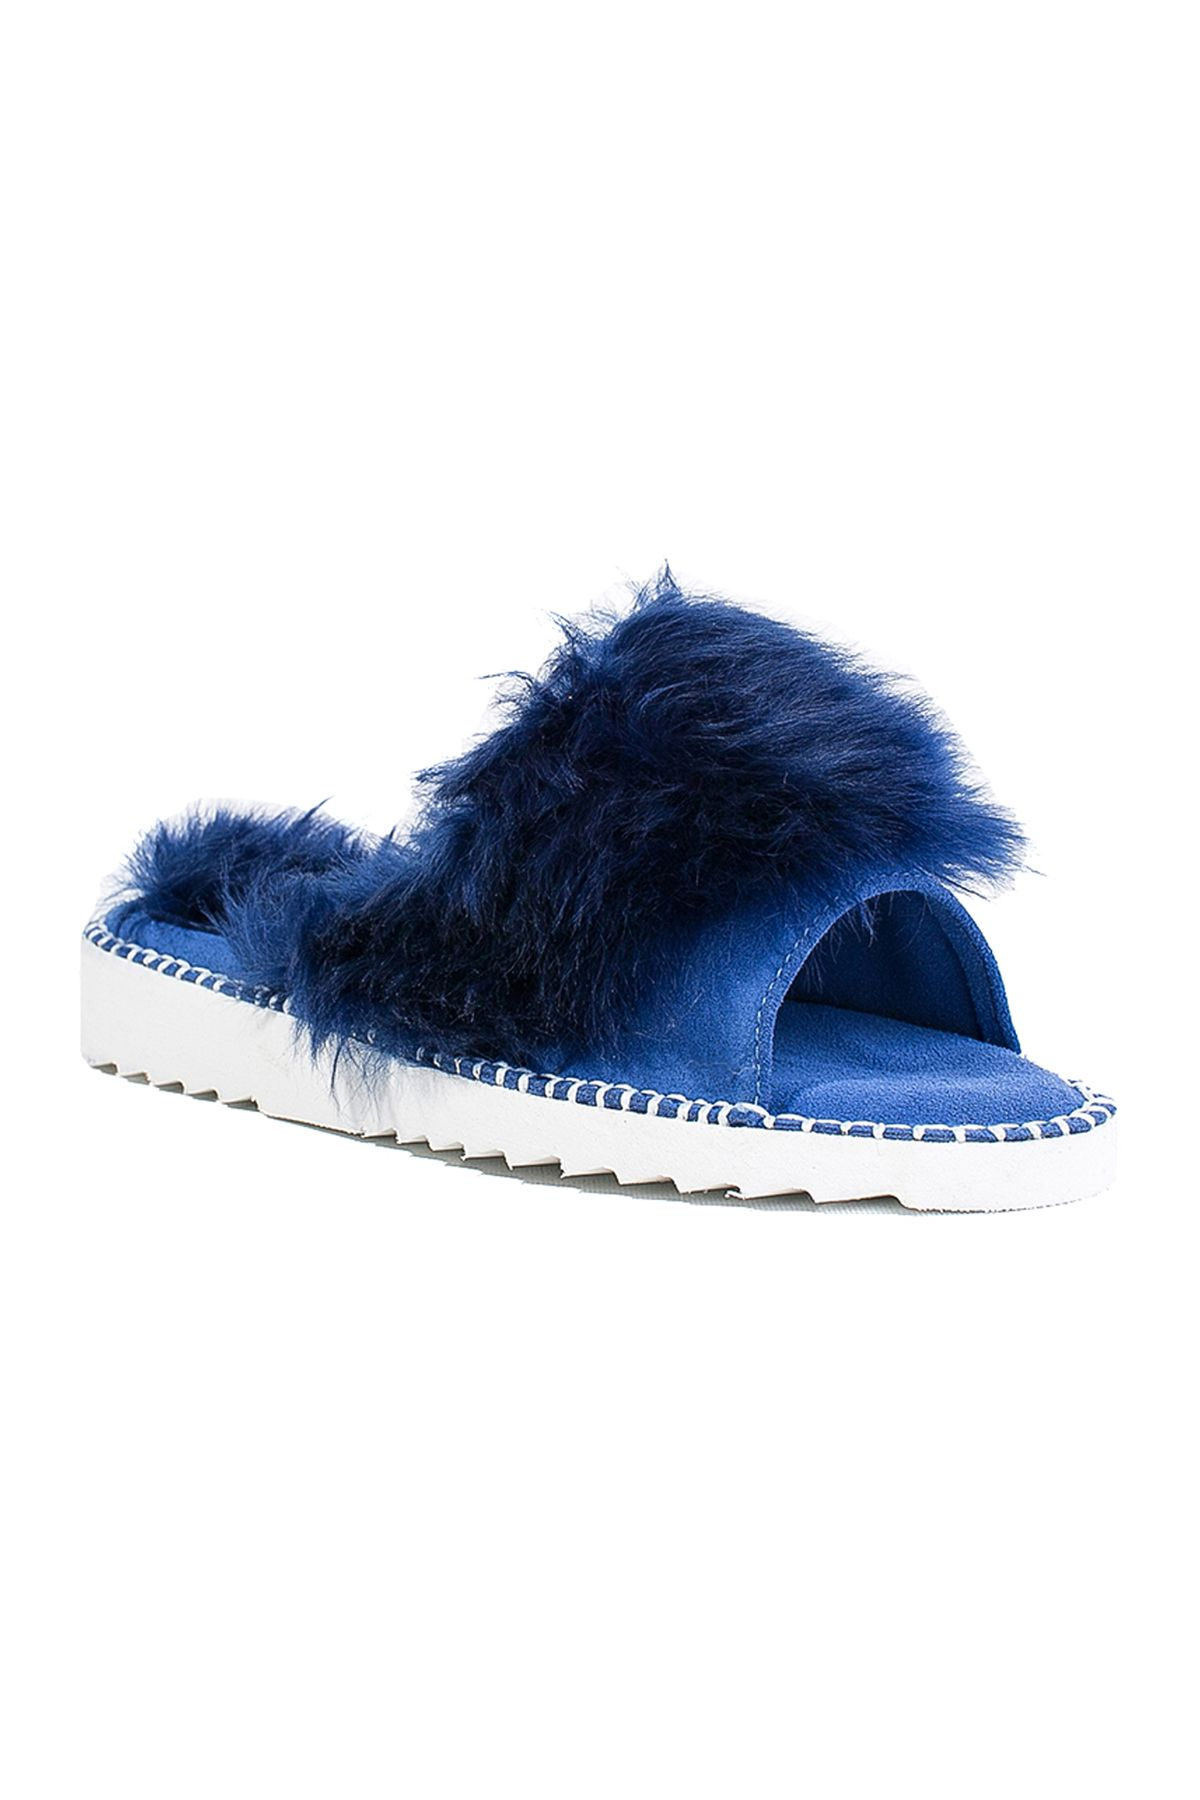 Pegia Port Pelle Women Slippers From Genuine Fur REC-007 Navy blue